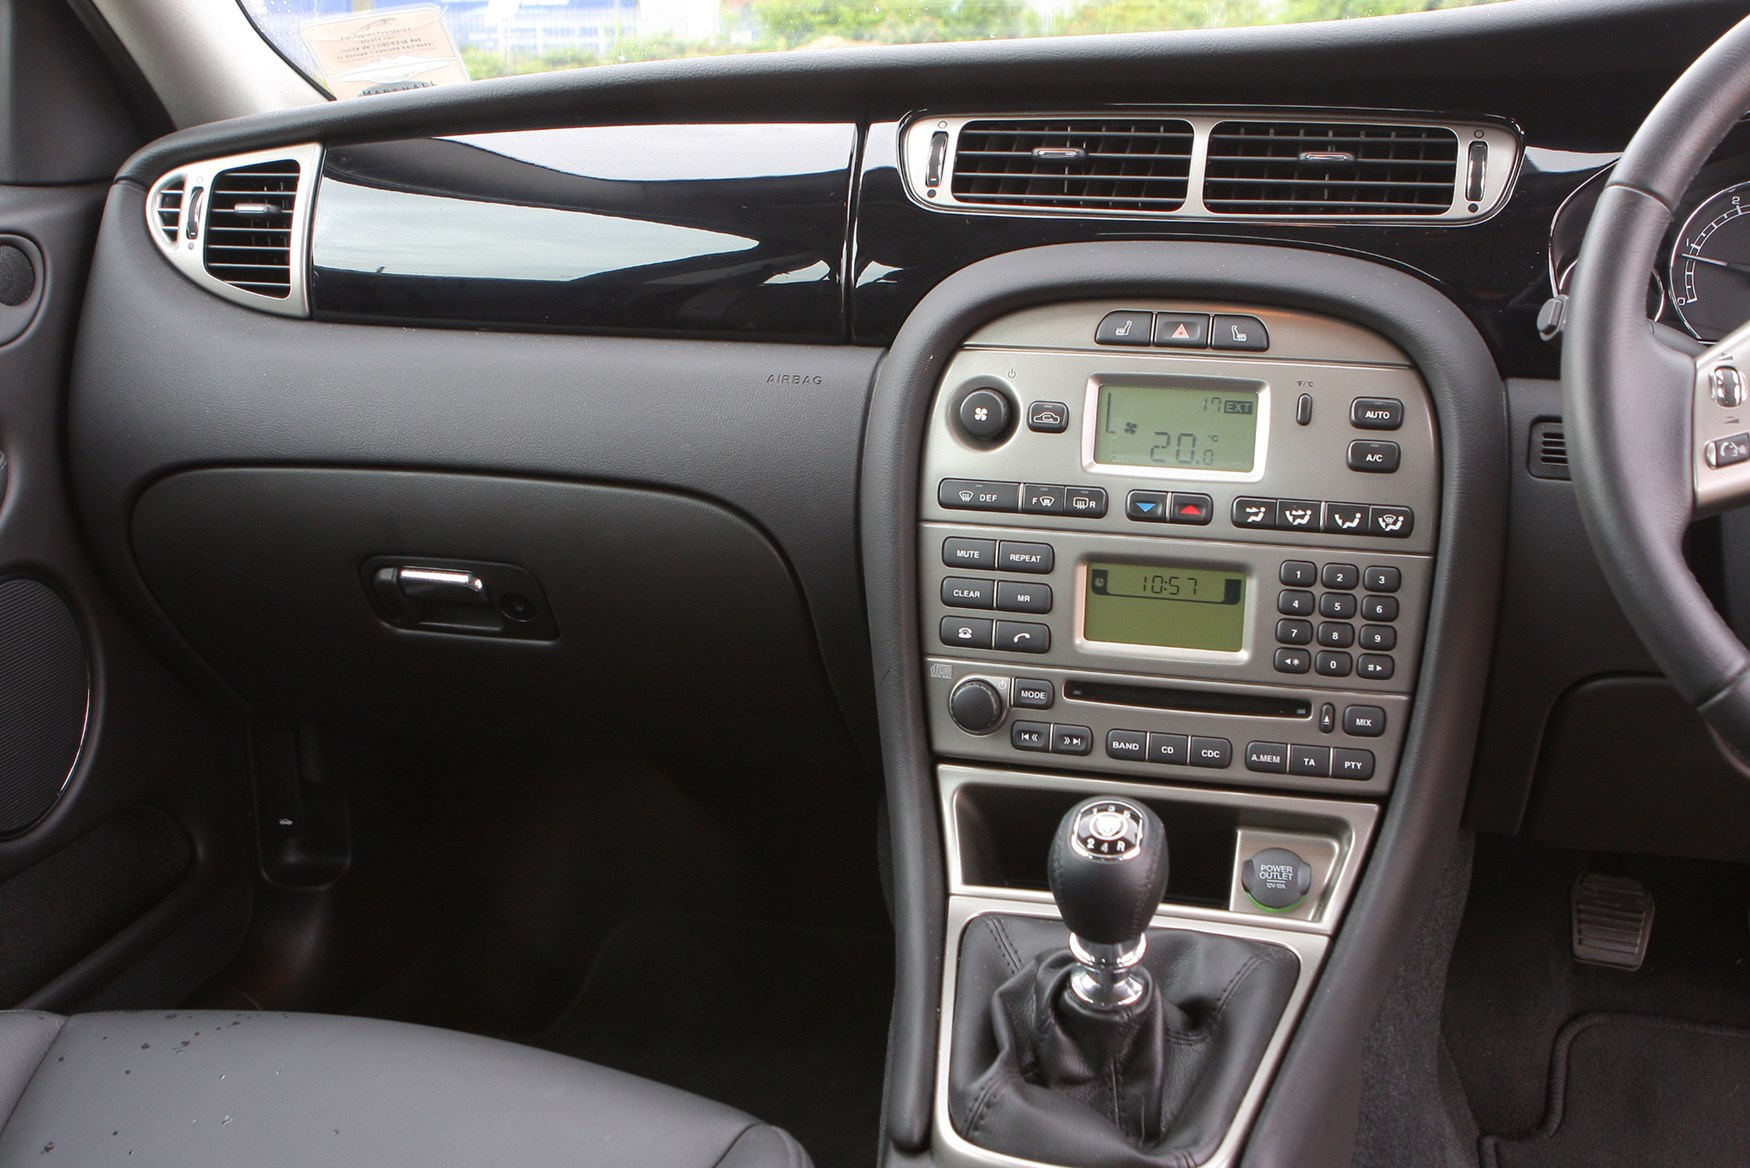 Jaguar X Type Saloon 2001 2010 Features Equipment And Accessories Parkers